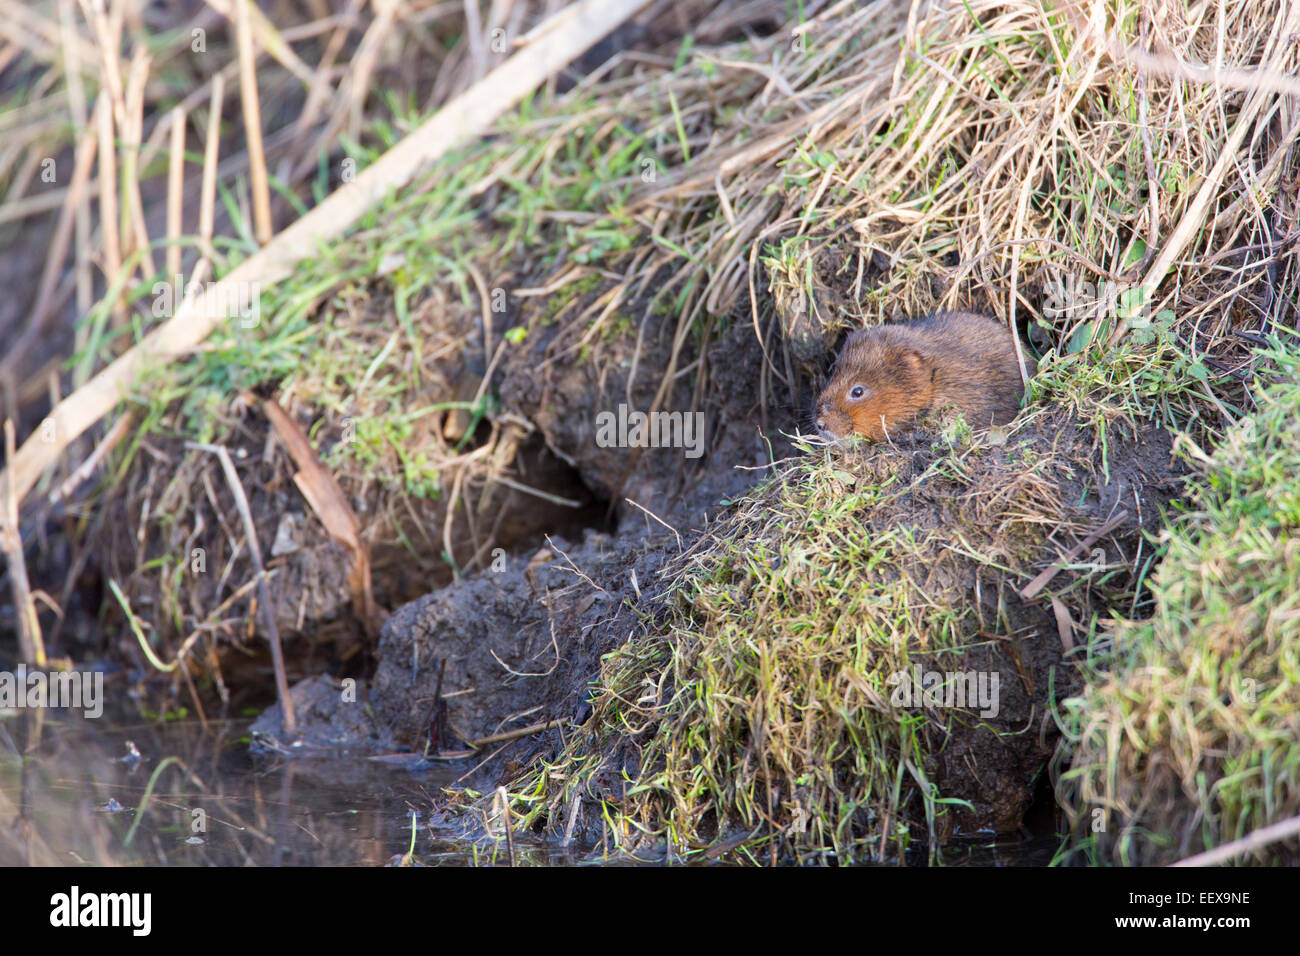 Water vole, Arvicola amphibius on bank overlooking water. Stock Photo